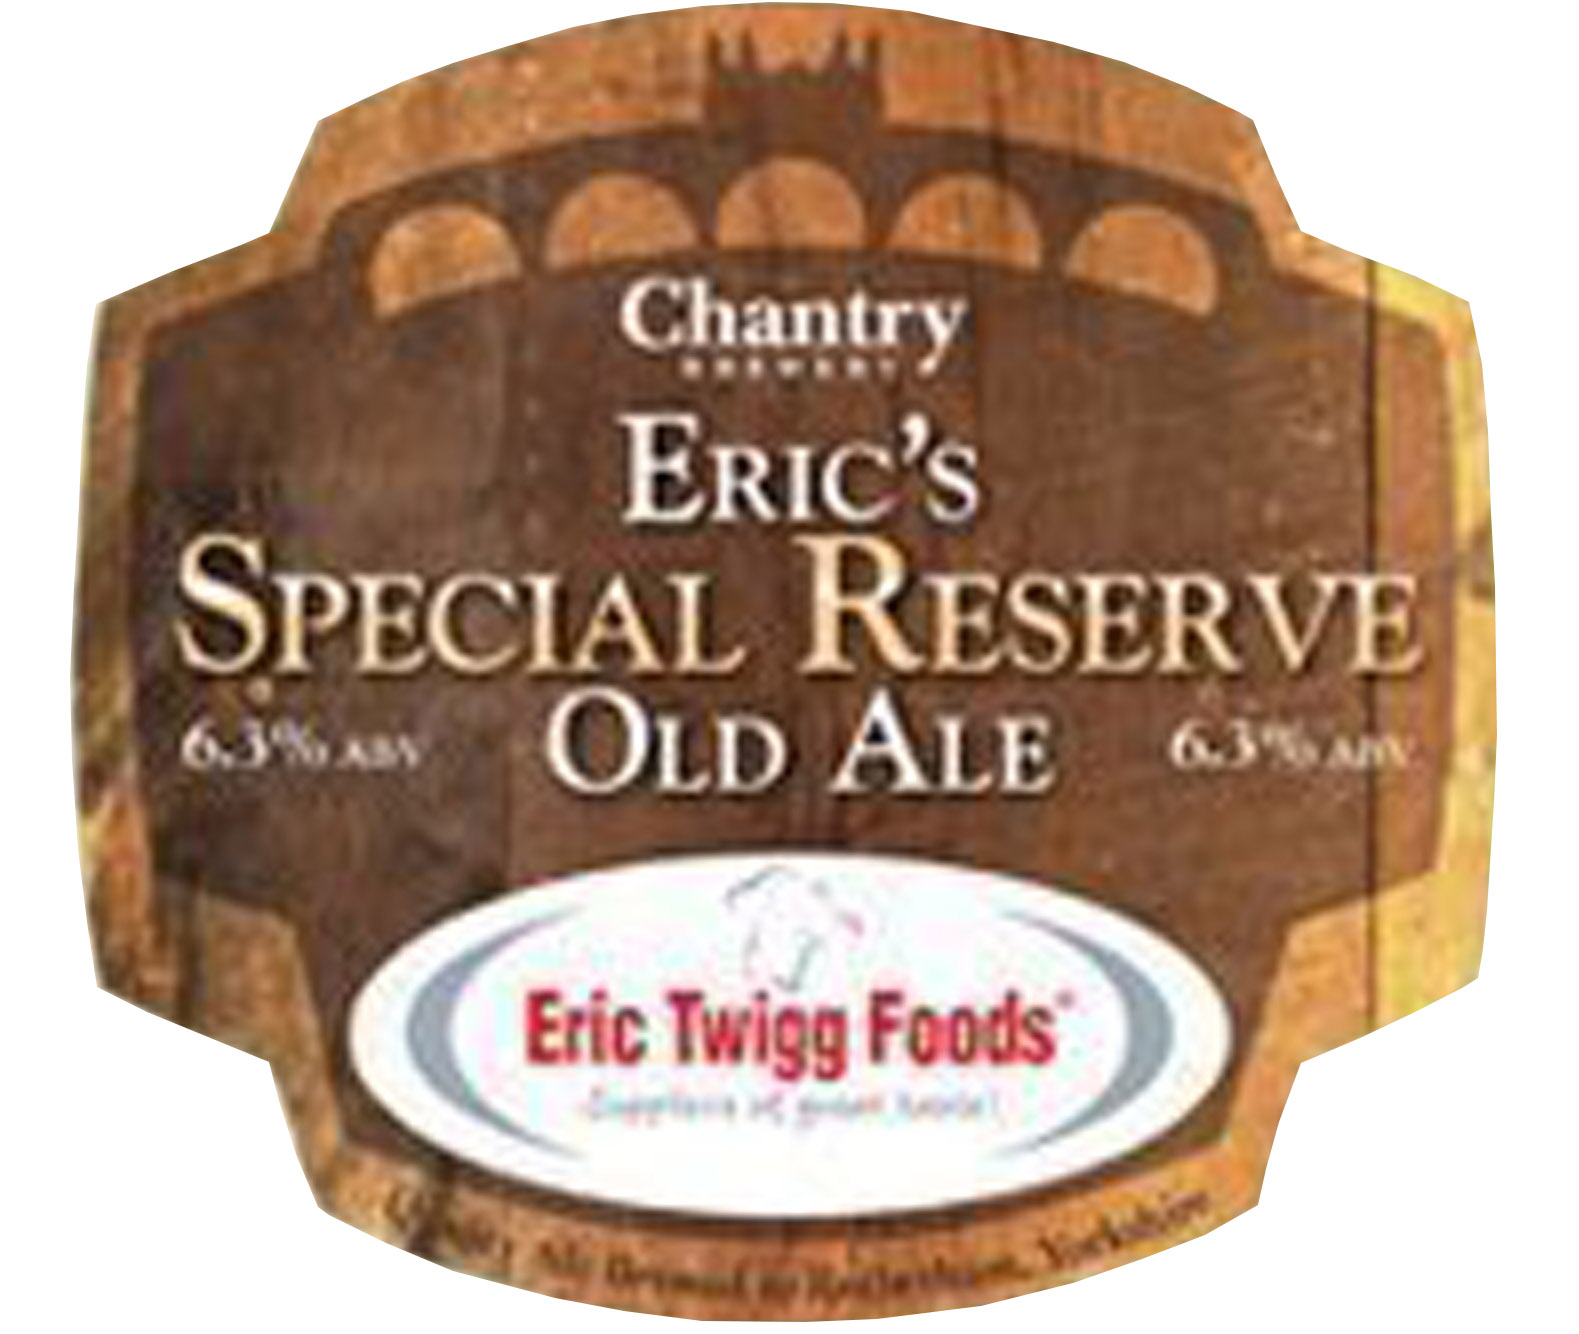 Chantry Brewery Eric's Special Reserve Old Ale